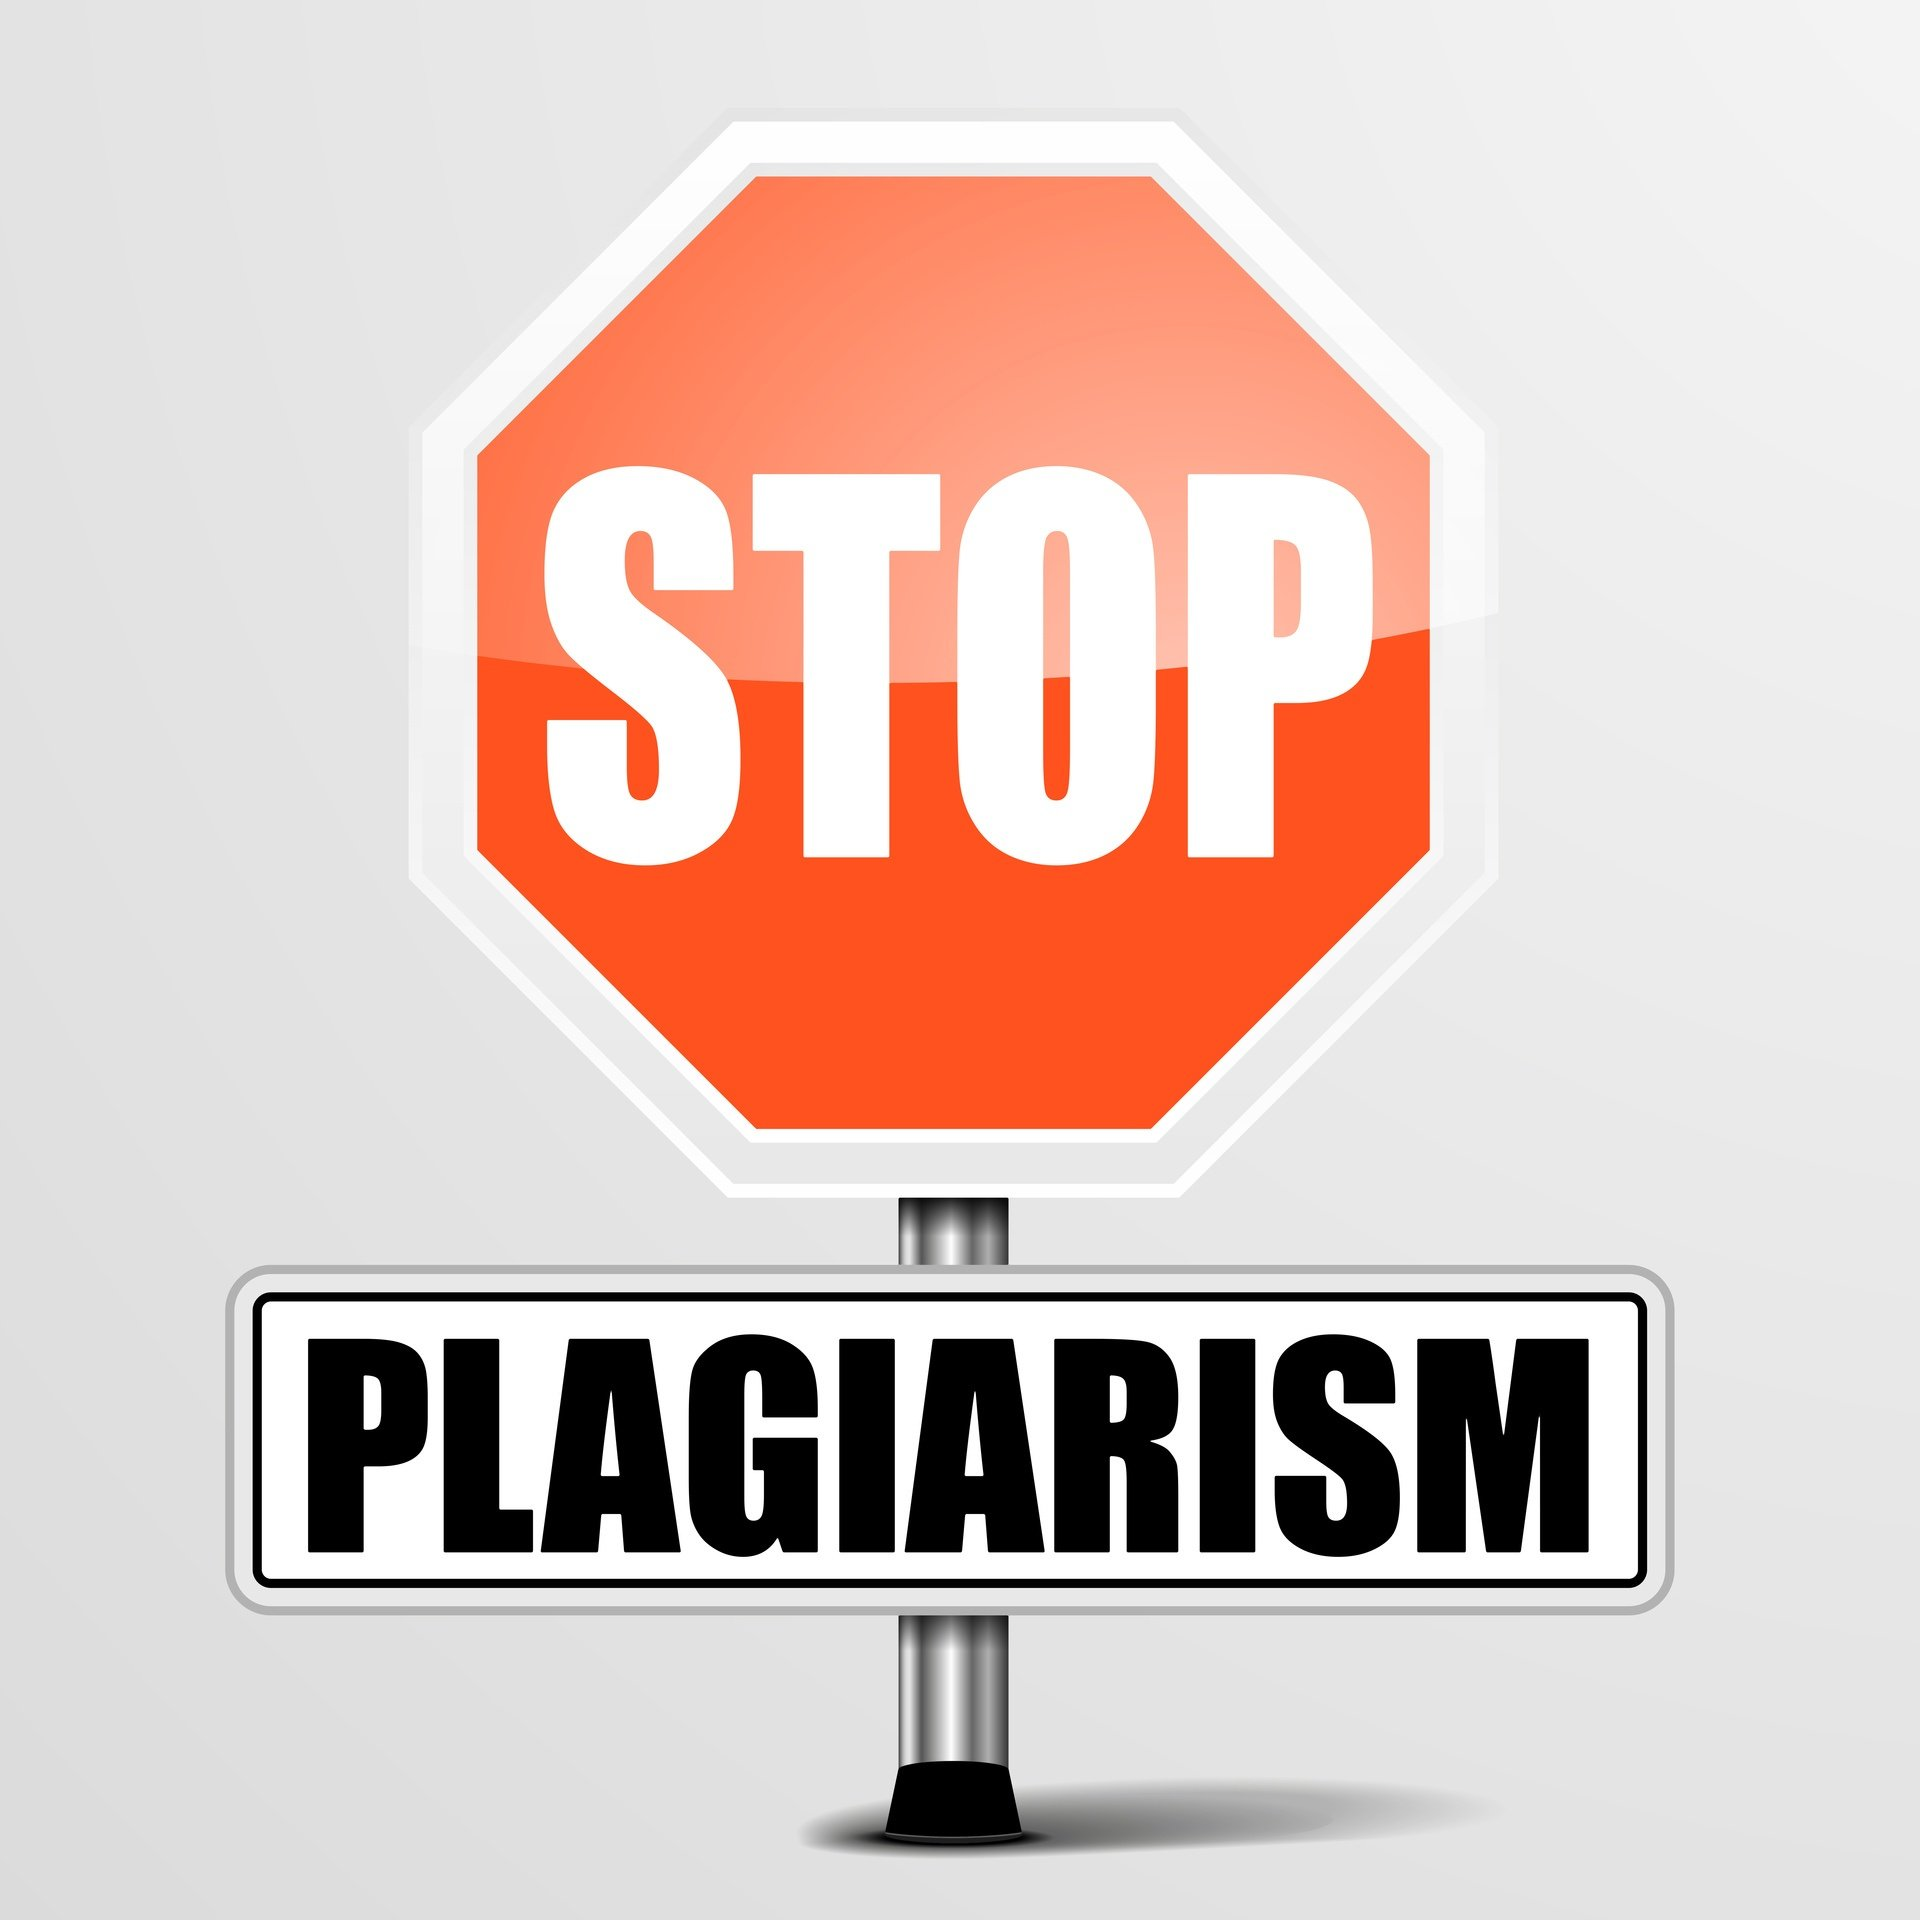 check plagiarism essay essay essay check plagiarism check my essay  how do instructors check for plagiarism plagiarism checker multilingual plagiarism check inside higher ed plagiarism checker narration essays aqua my